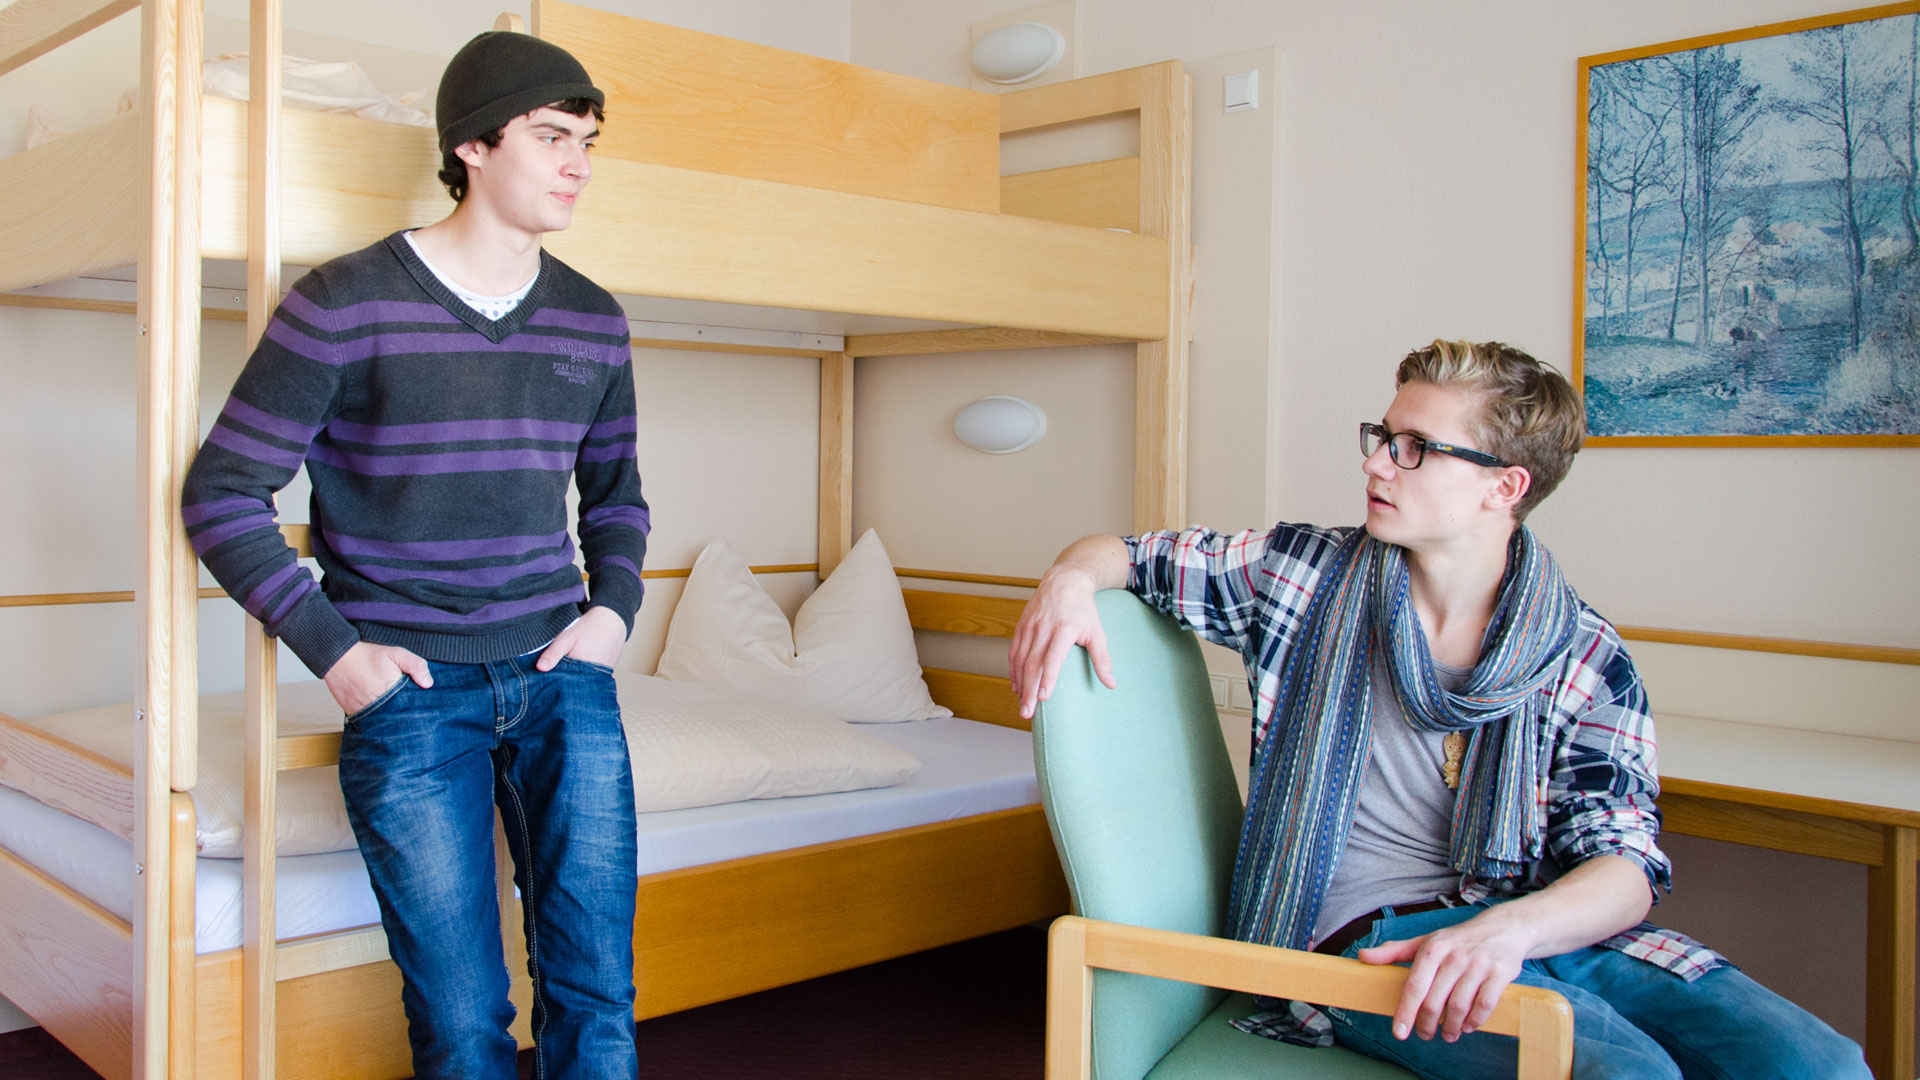 Accommodation: An example of a twin room in Bad Schussenried